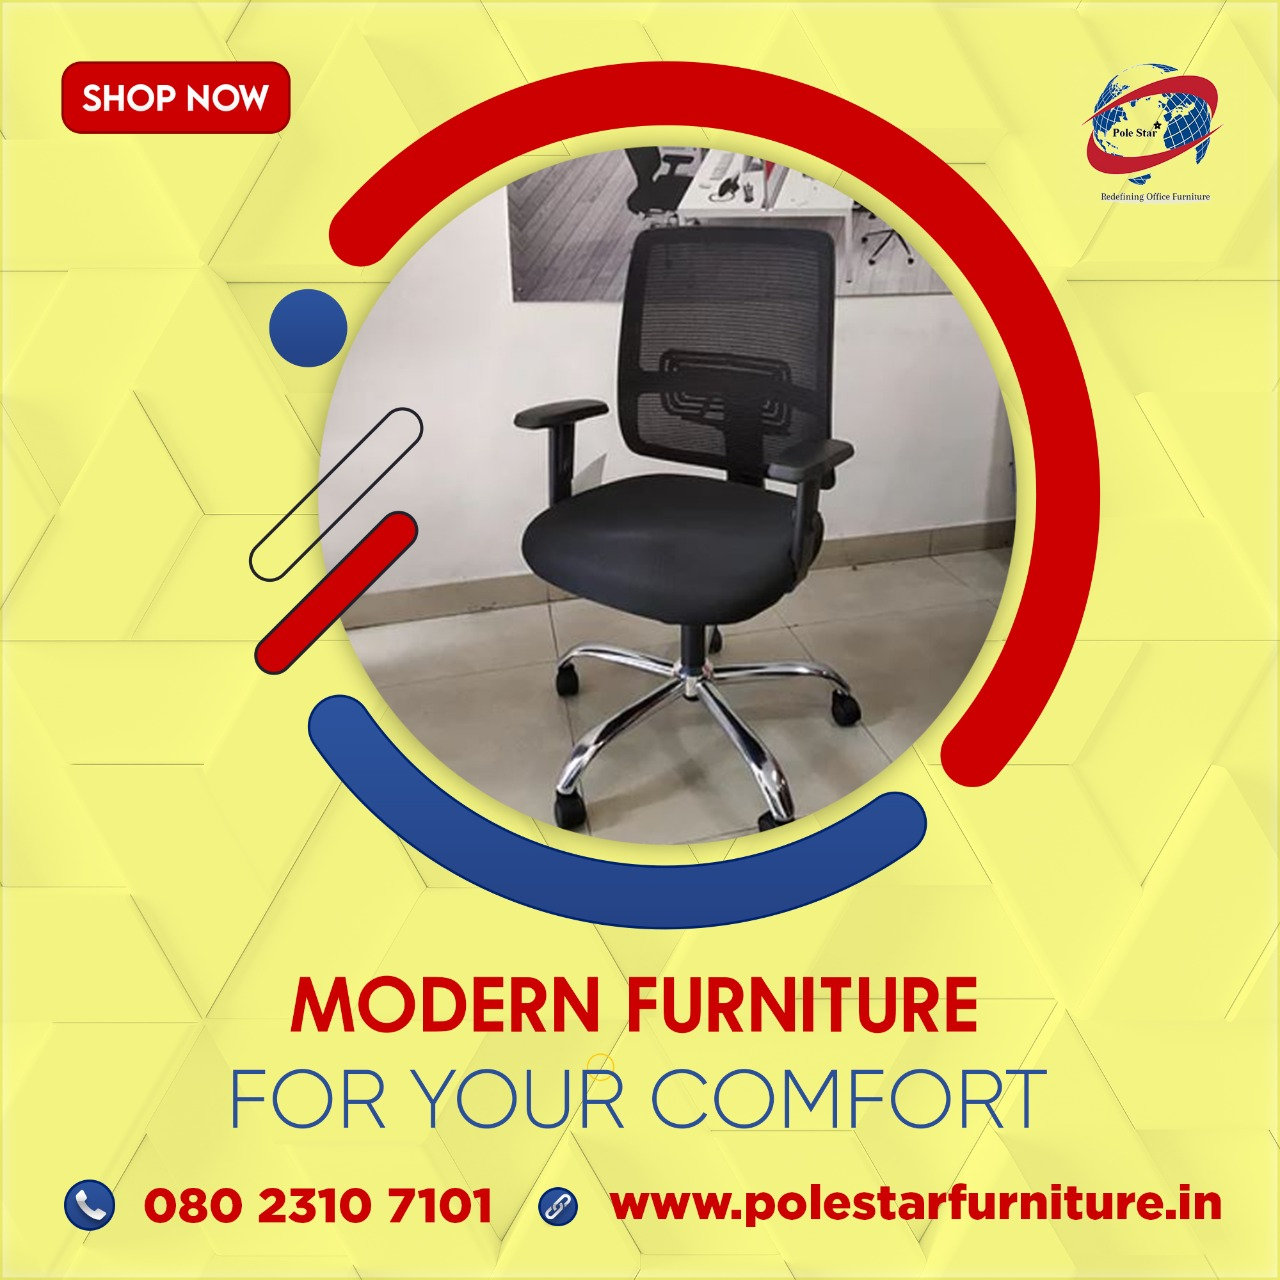 Office Chairs In Bangalore 9620601790 Office Chair Manufacturer In Bangalore Work Station Manufacturers In Bangalore Work Station In Bangalore Conference Chair Manufacturers In Bangalore Conference Chair Manufacturers In Rajajinagar Office